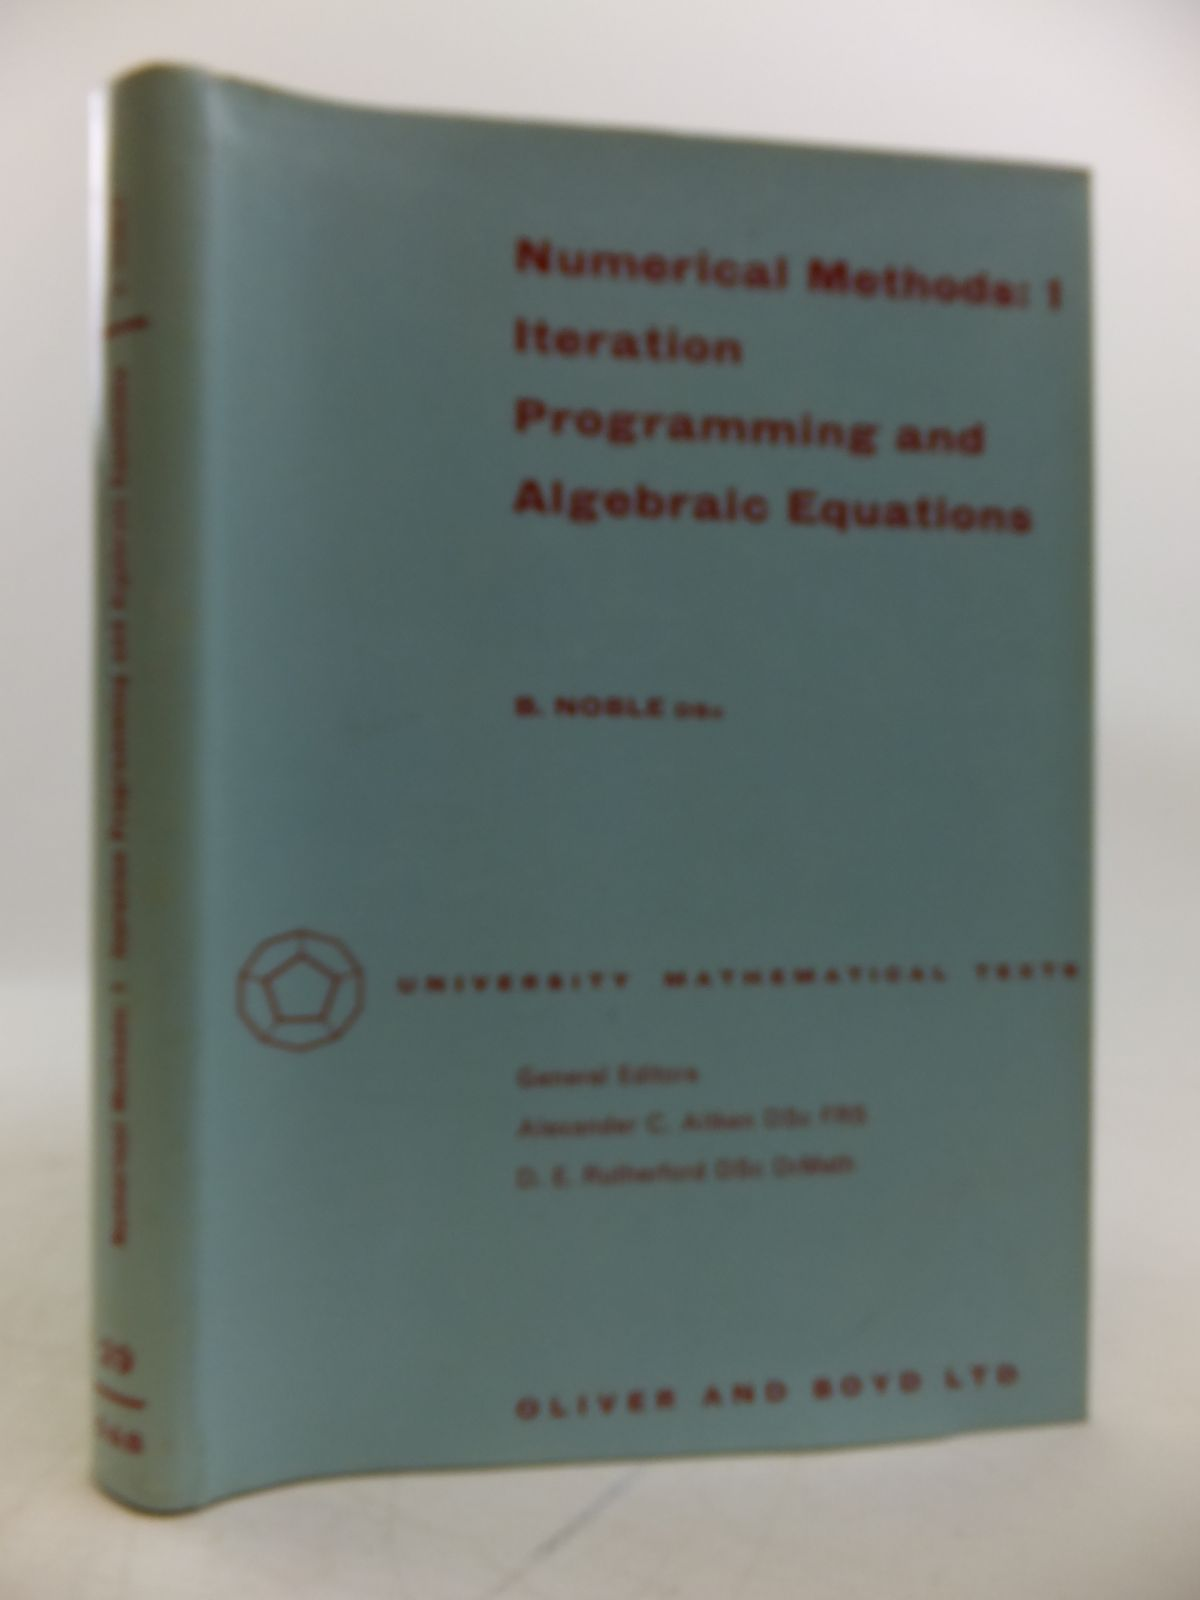 Photo of NUMERICAL METHODS 1: ITERATION, PROGRAMMING AND ALGEBRAIC EQUATIONS written by Noble, Ben published by Oliver and Boyd (STOCK CODE: 1811823)  for sale by Stella & Rose's Books